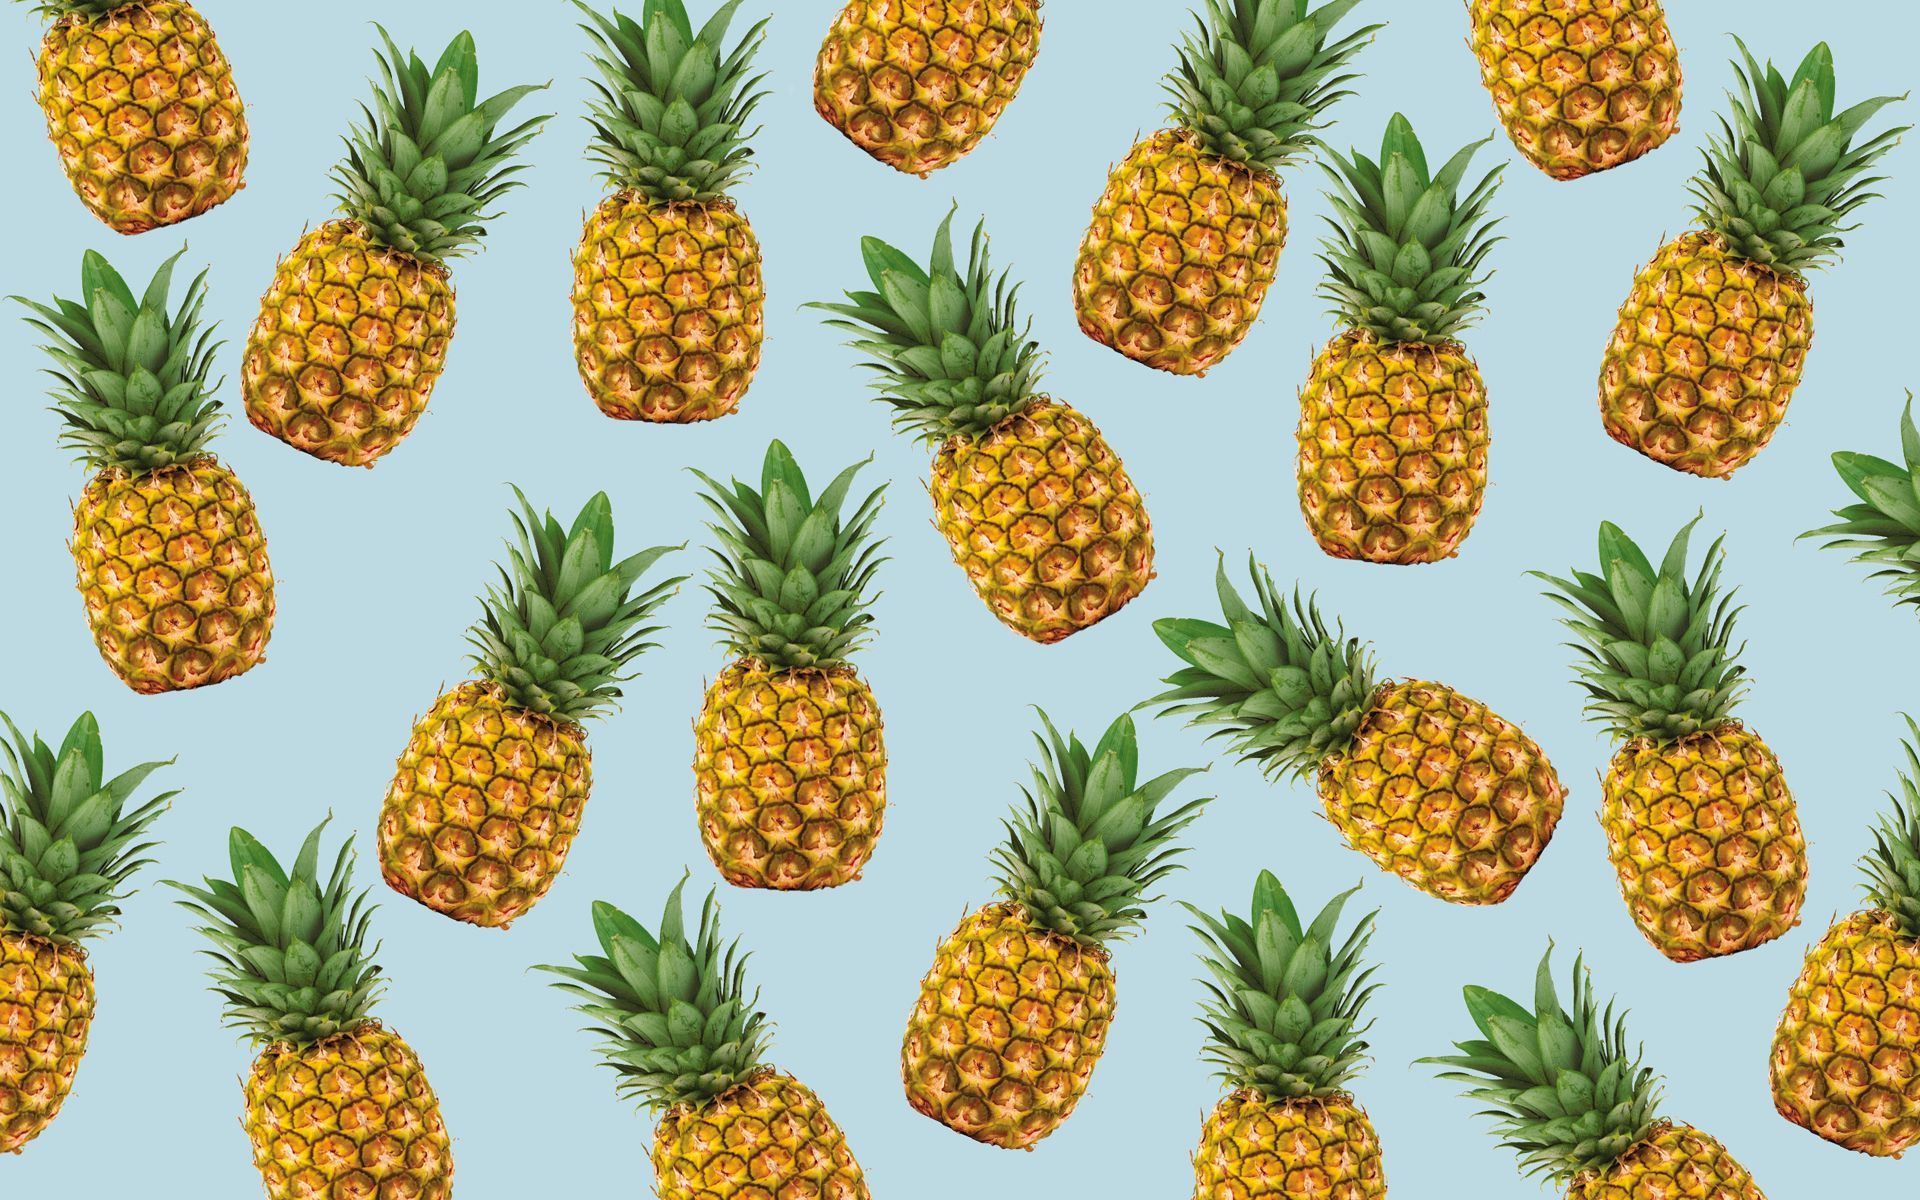 40+ Colorful Pineapple Computer Wallpapers Download at